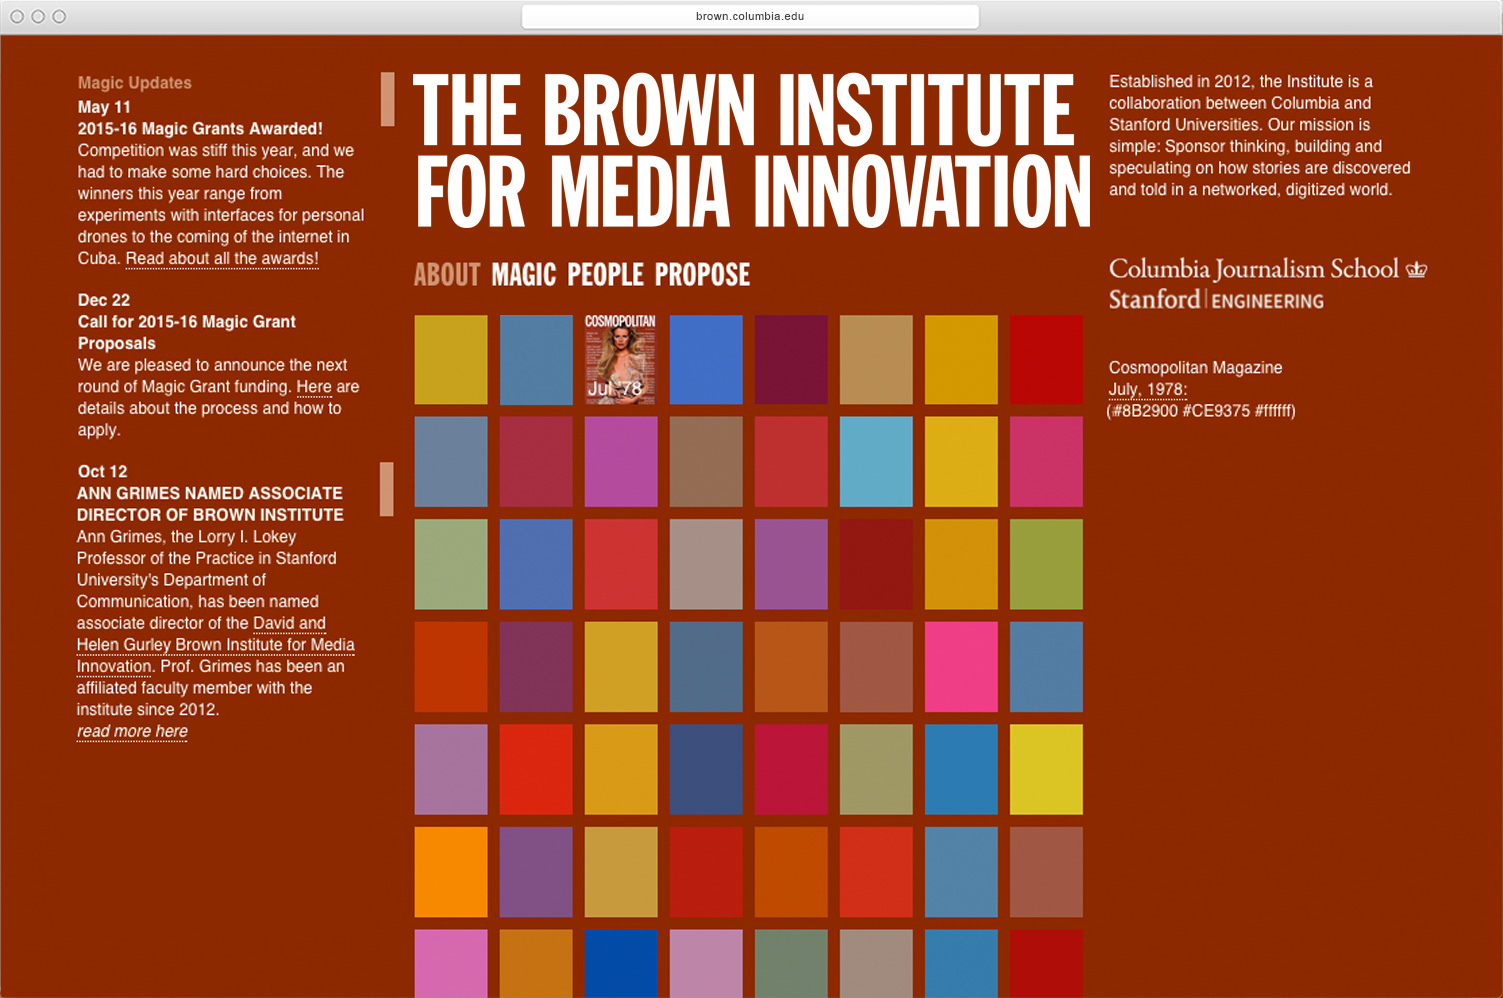 Brown Institute for Media Innovation identity and website  - MTWTF